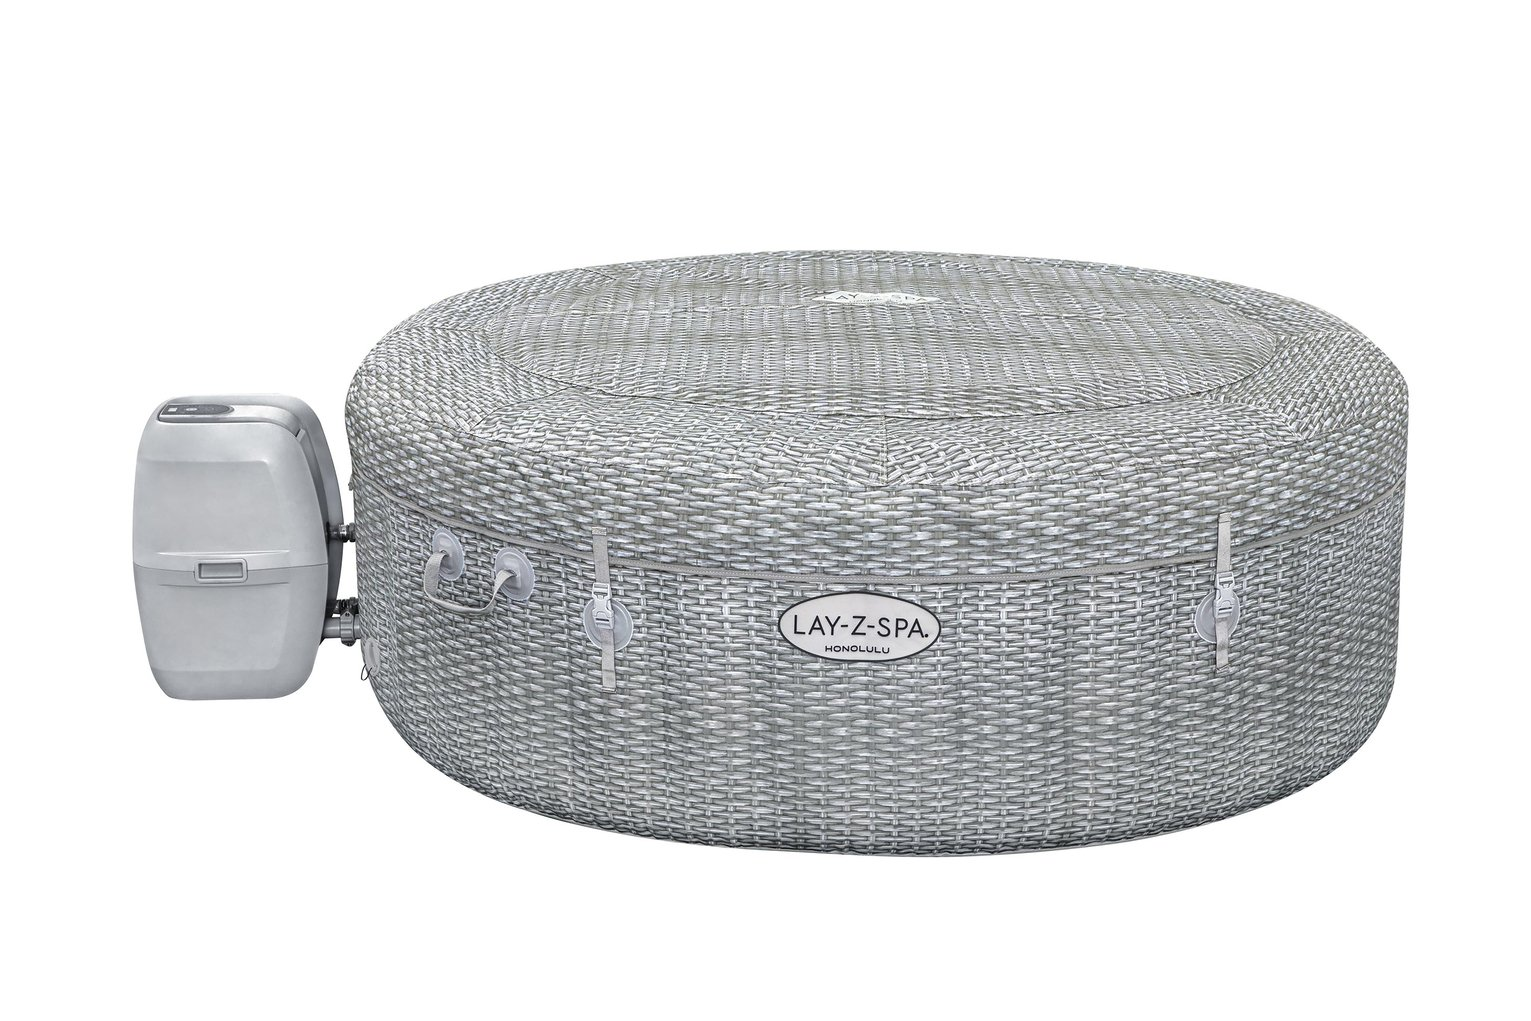 Lay-Z-Spa Honolulu 6 Person LED Hot Tub - Pick up Instore